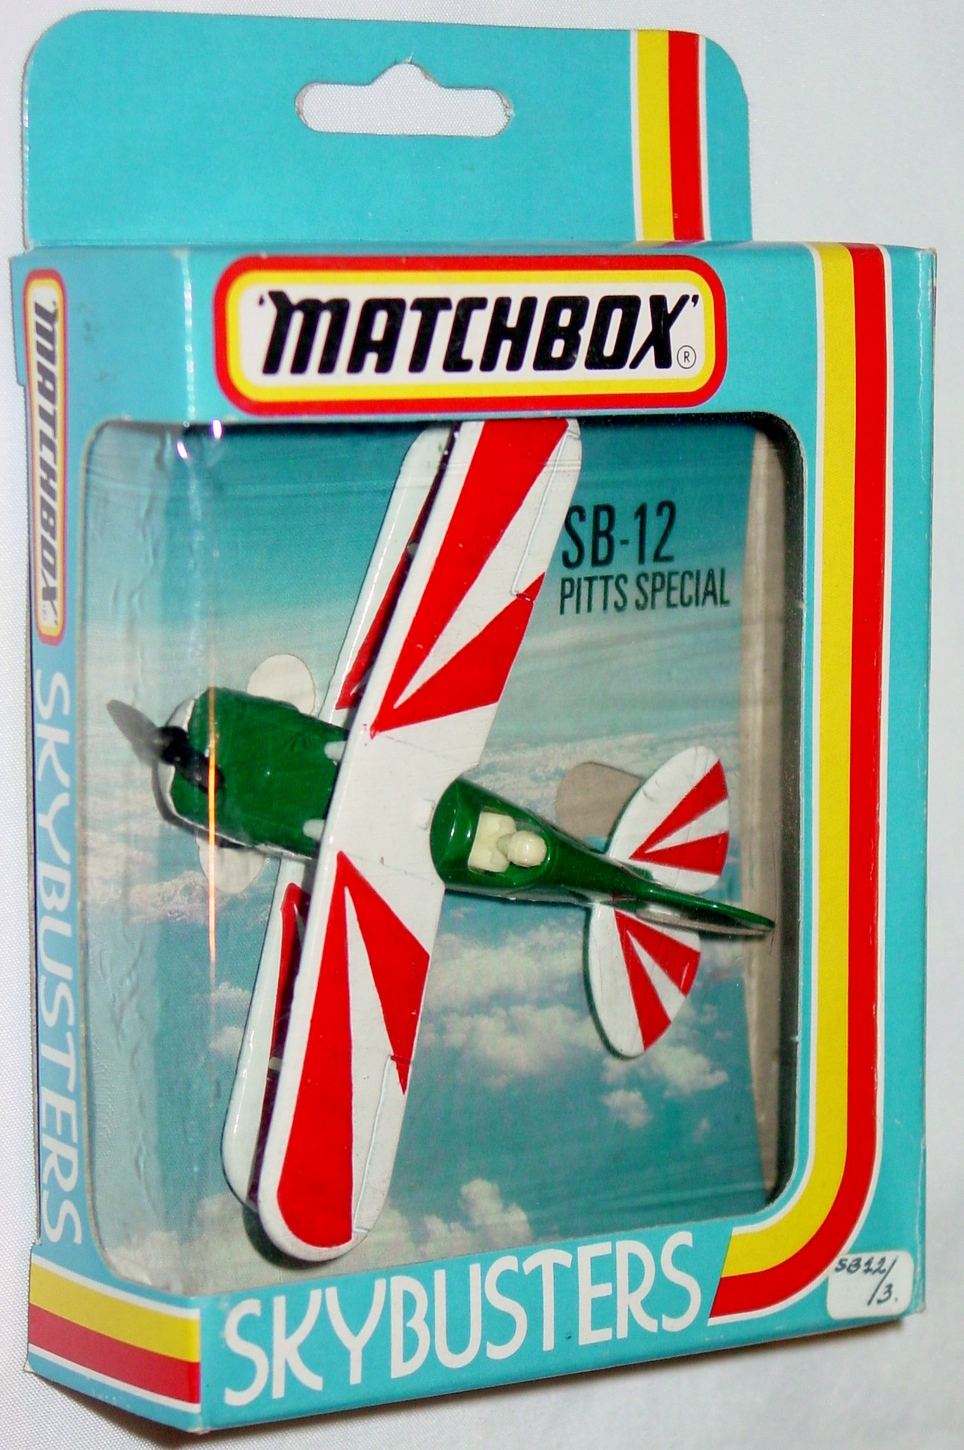 Sky Buster 12 B 2 - Pitts Special dark Green/White red tampo Made in Macau